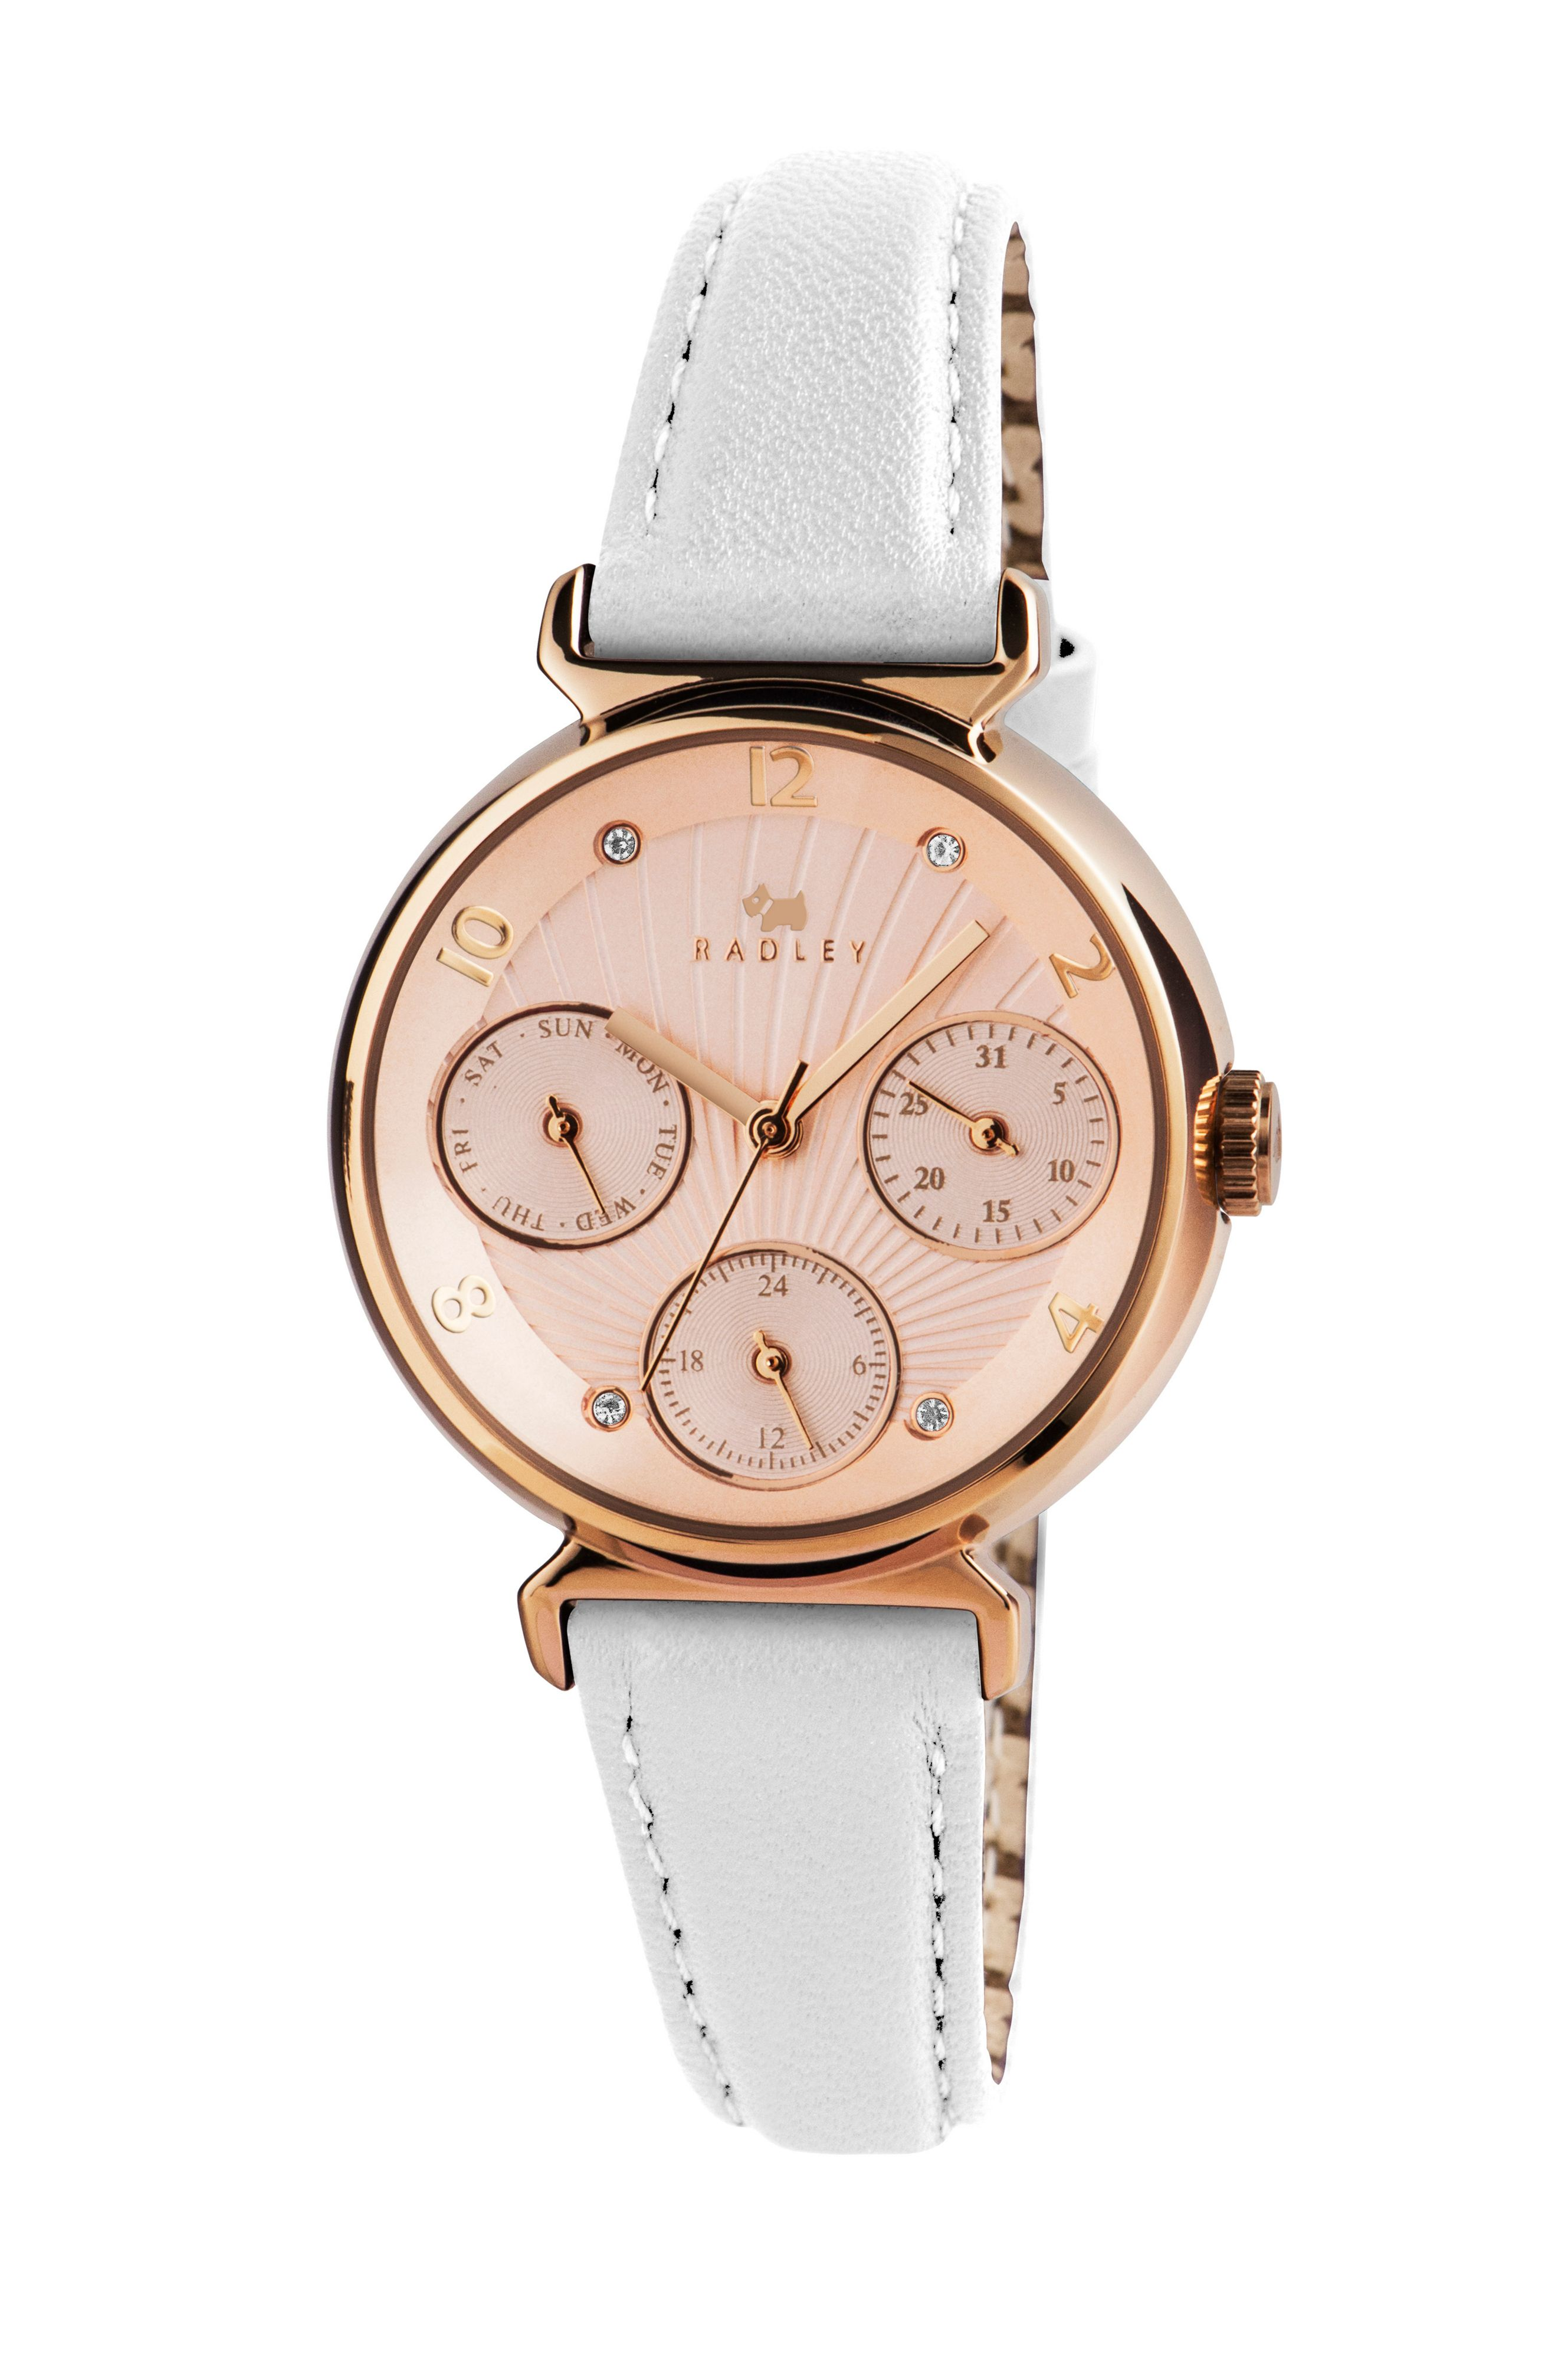 RY2246 Rose gold plated bracelet ladies watch